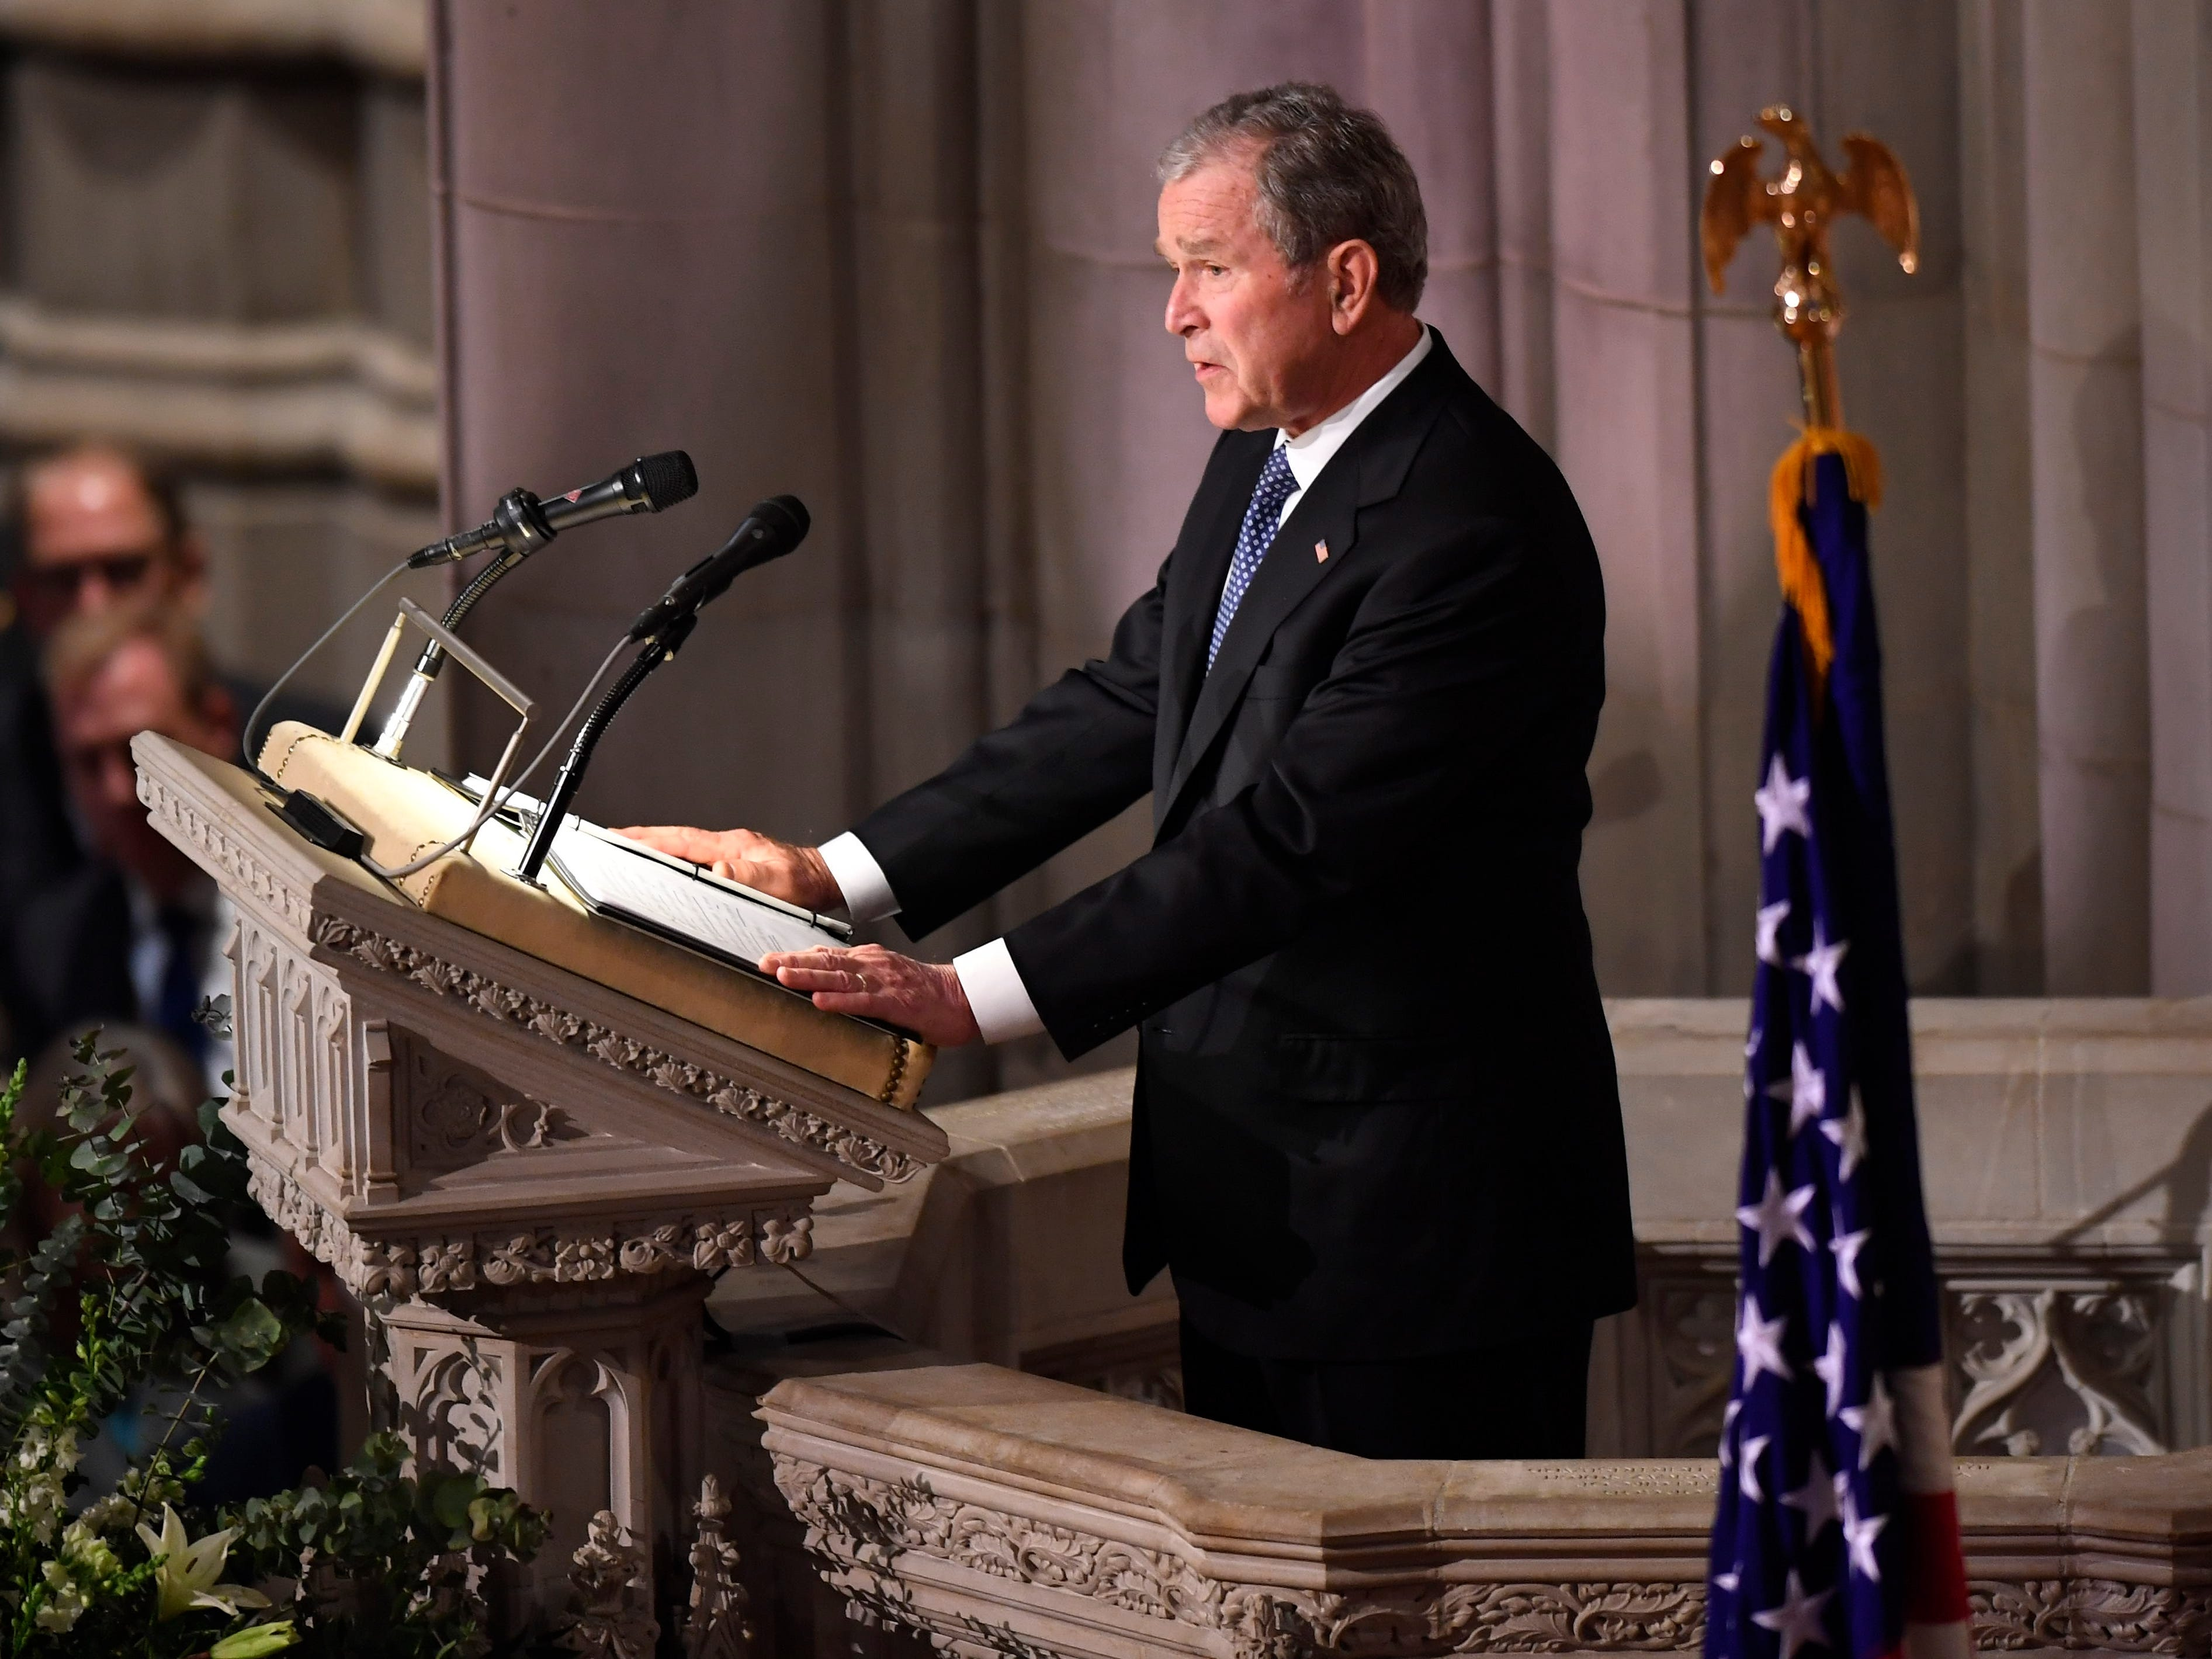 Former President George W. Bush speaks at a State Funeral for former President George H.W. Bush at the Washington National Cathedral in Washington, Dec. 5, 2018.